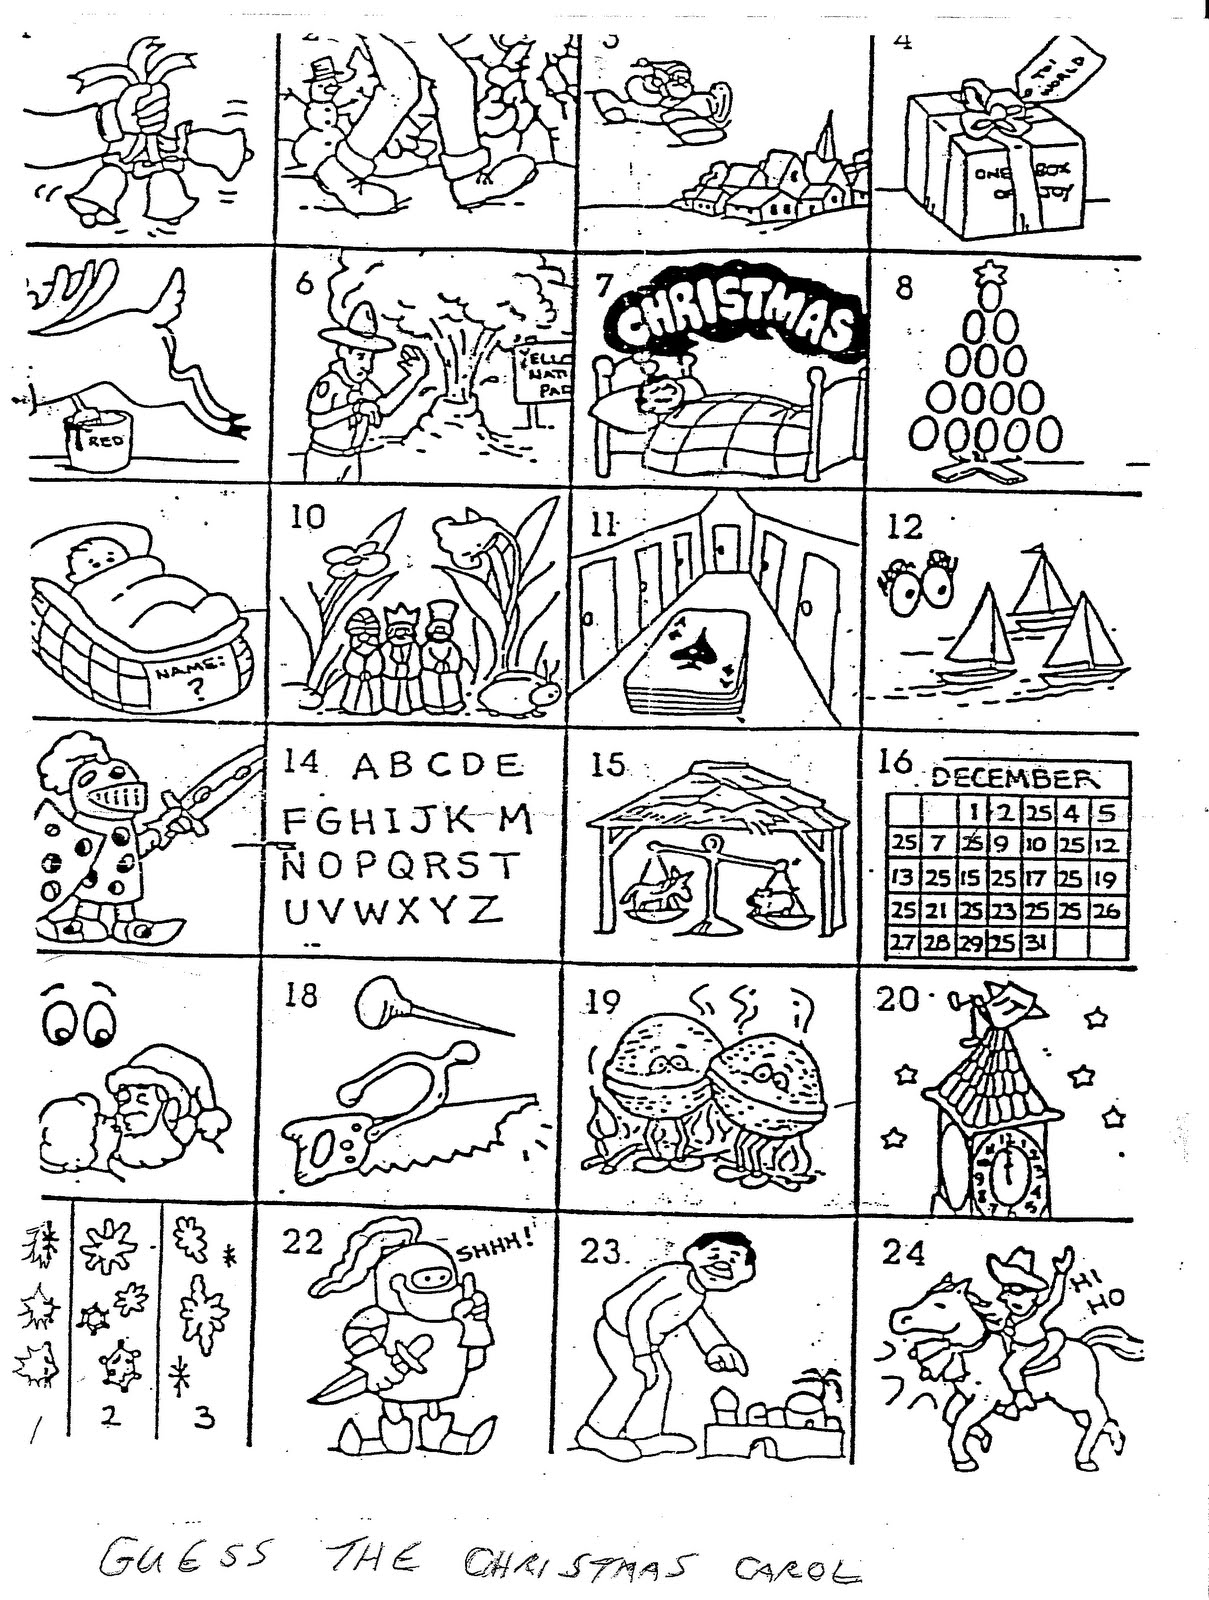 Can You Name the Christmas Carol in each Box? | That Bloomin' Garden